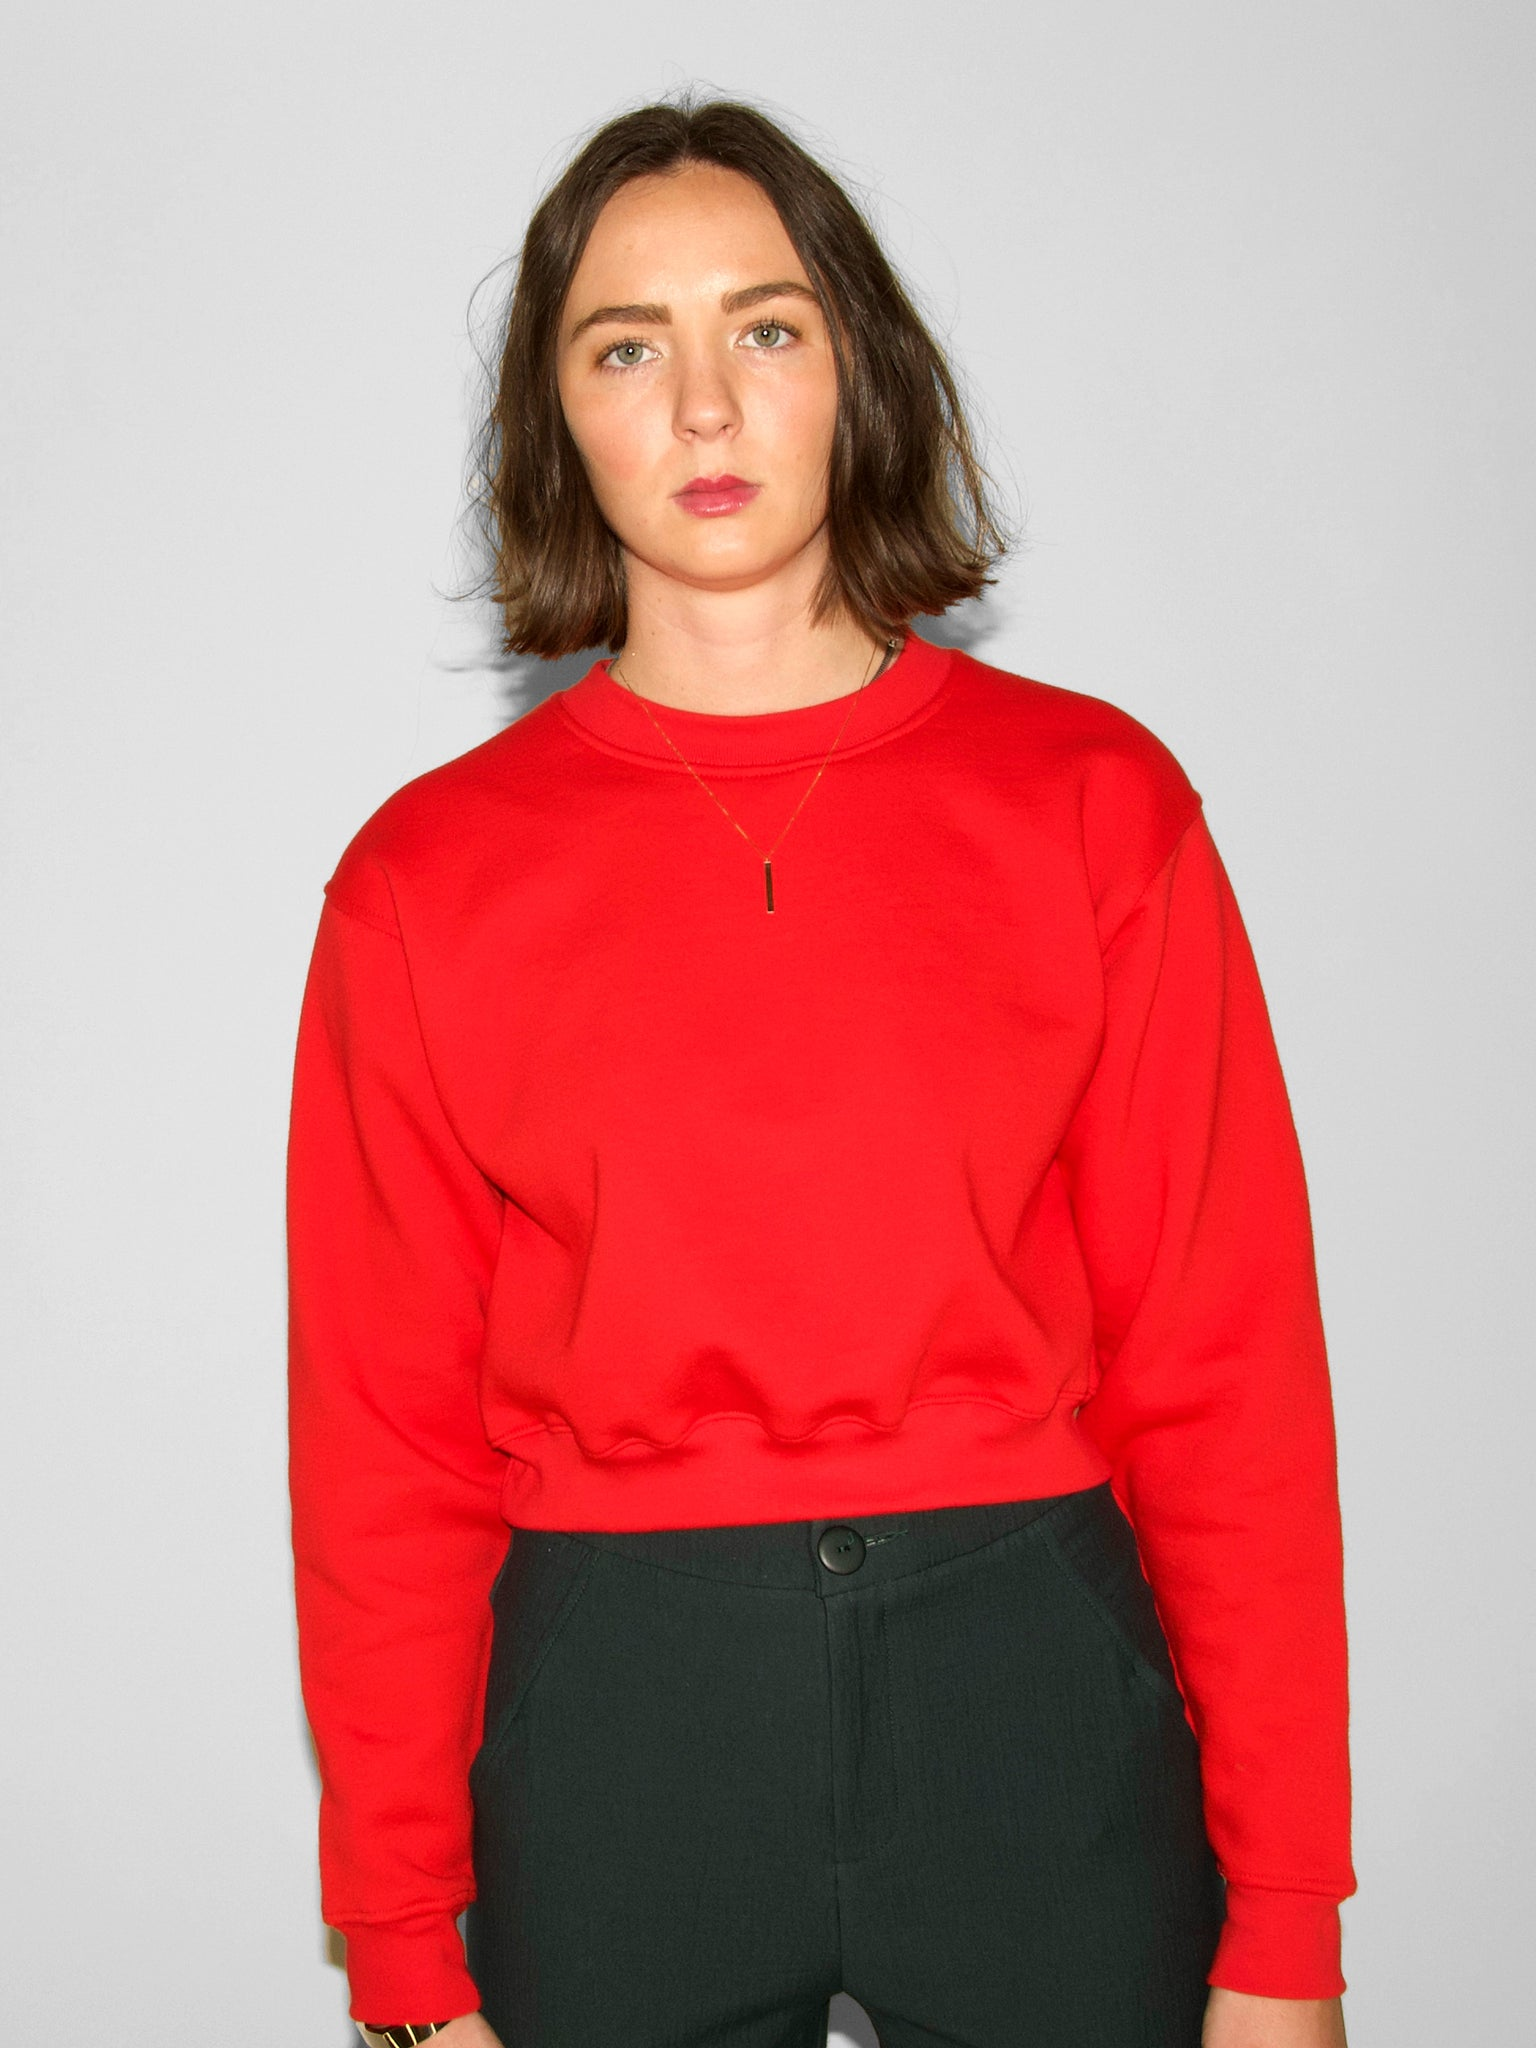 IGWT - Joni Cropped Sweatshirt / Poppy